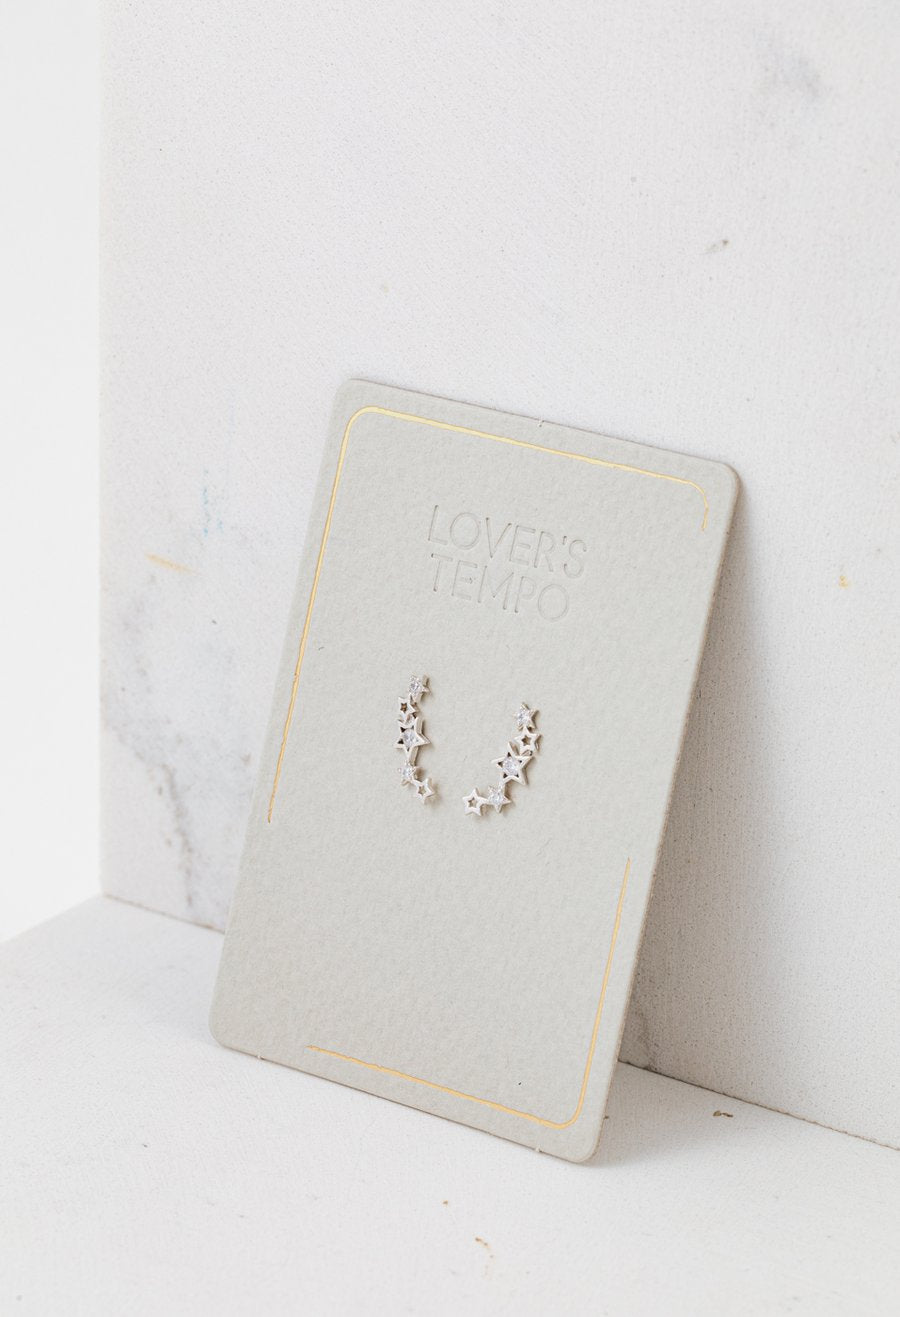 LOVER'S TEMPO - GAMMA CLIMBER EARRINGS IN SILVER